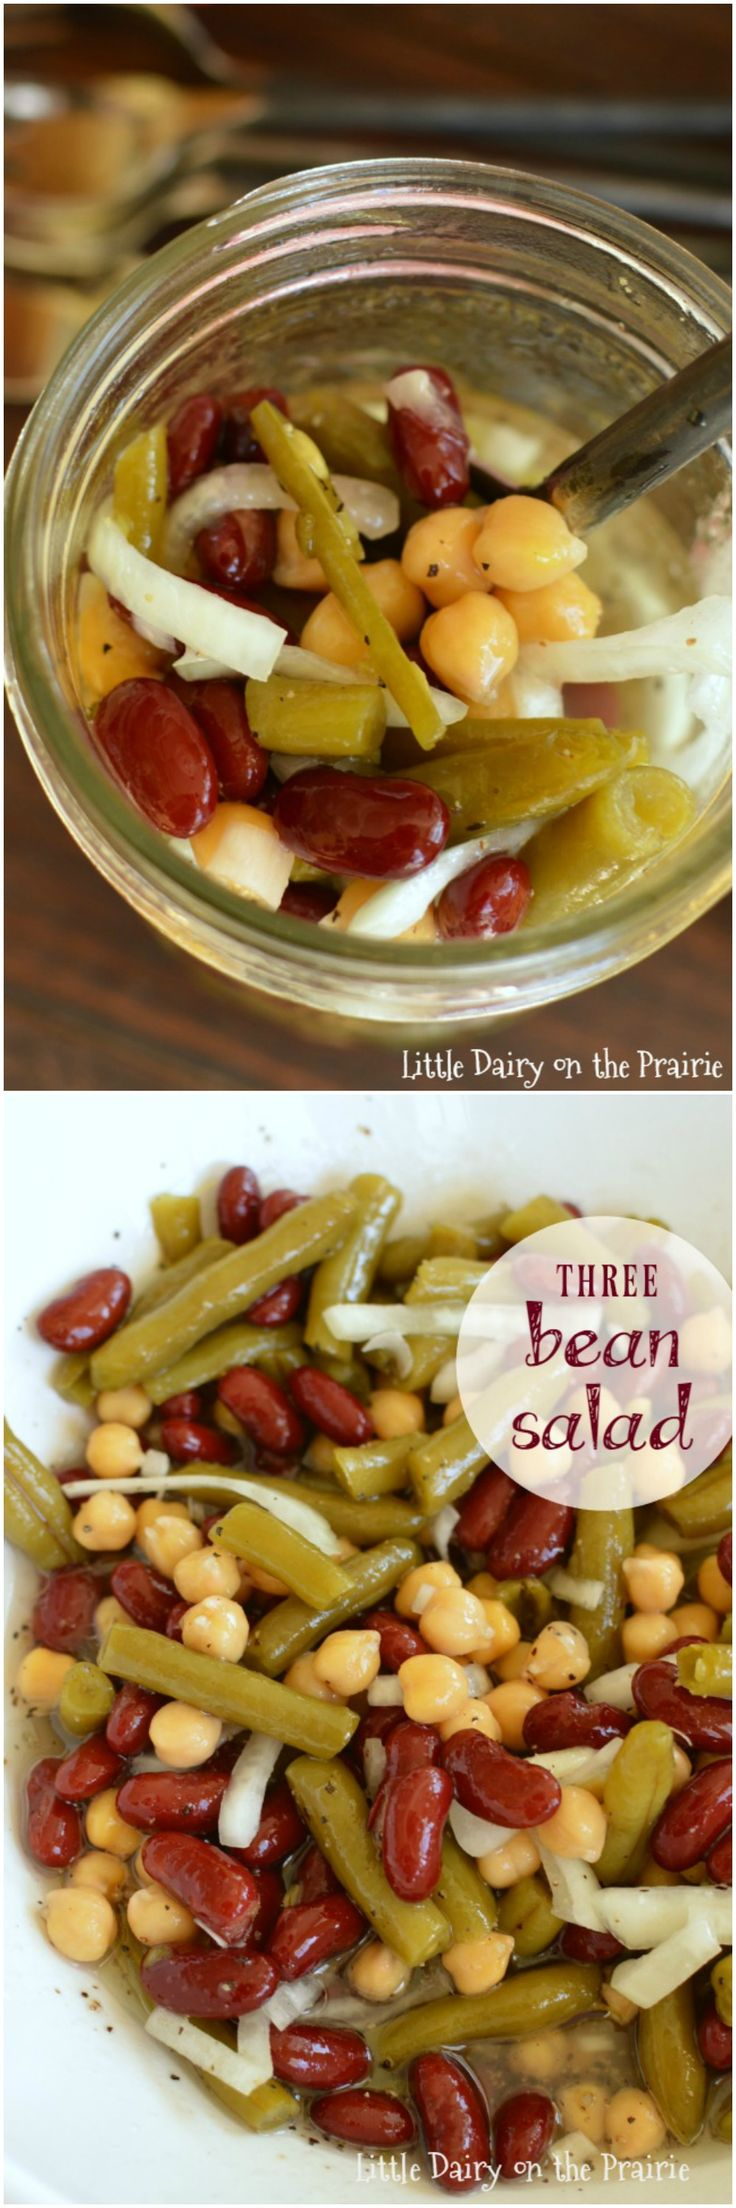 Three Bean Salad is one of my go to salads! I always have the ingredients in my pantry, its so easy to make, and every one raves about it!: